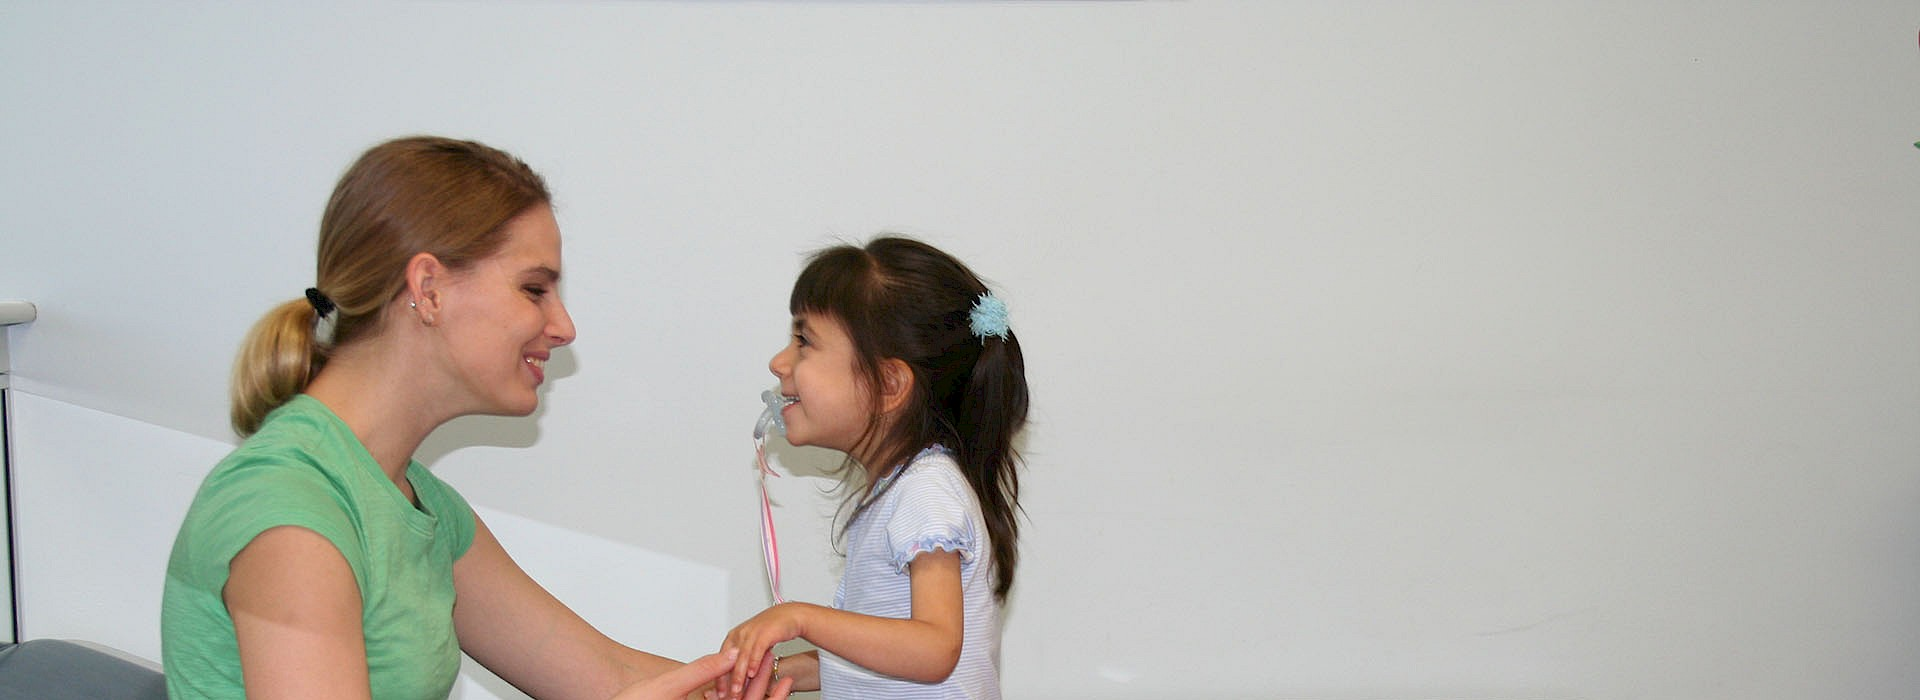 Outpatient Services Child with Therapist